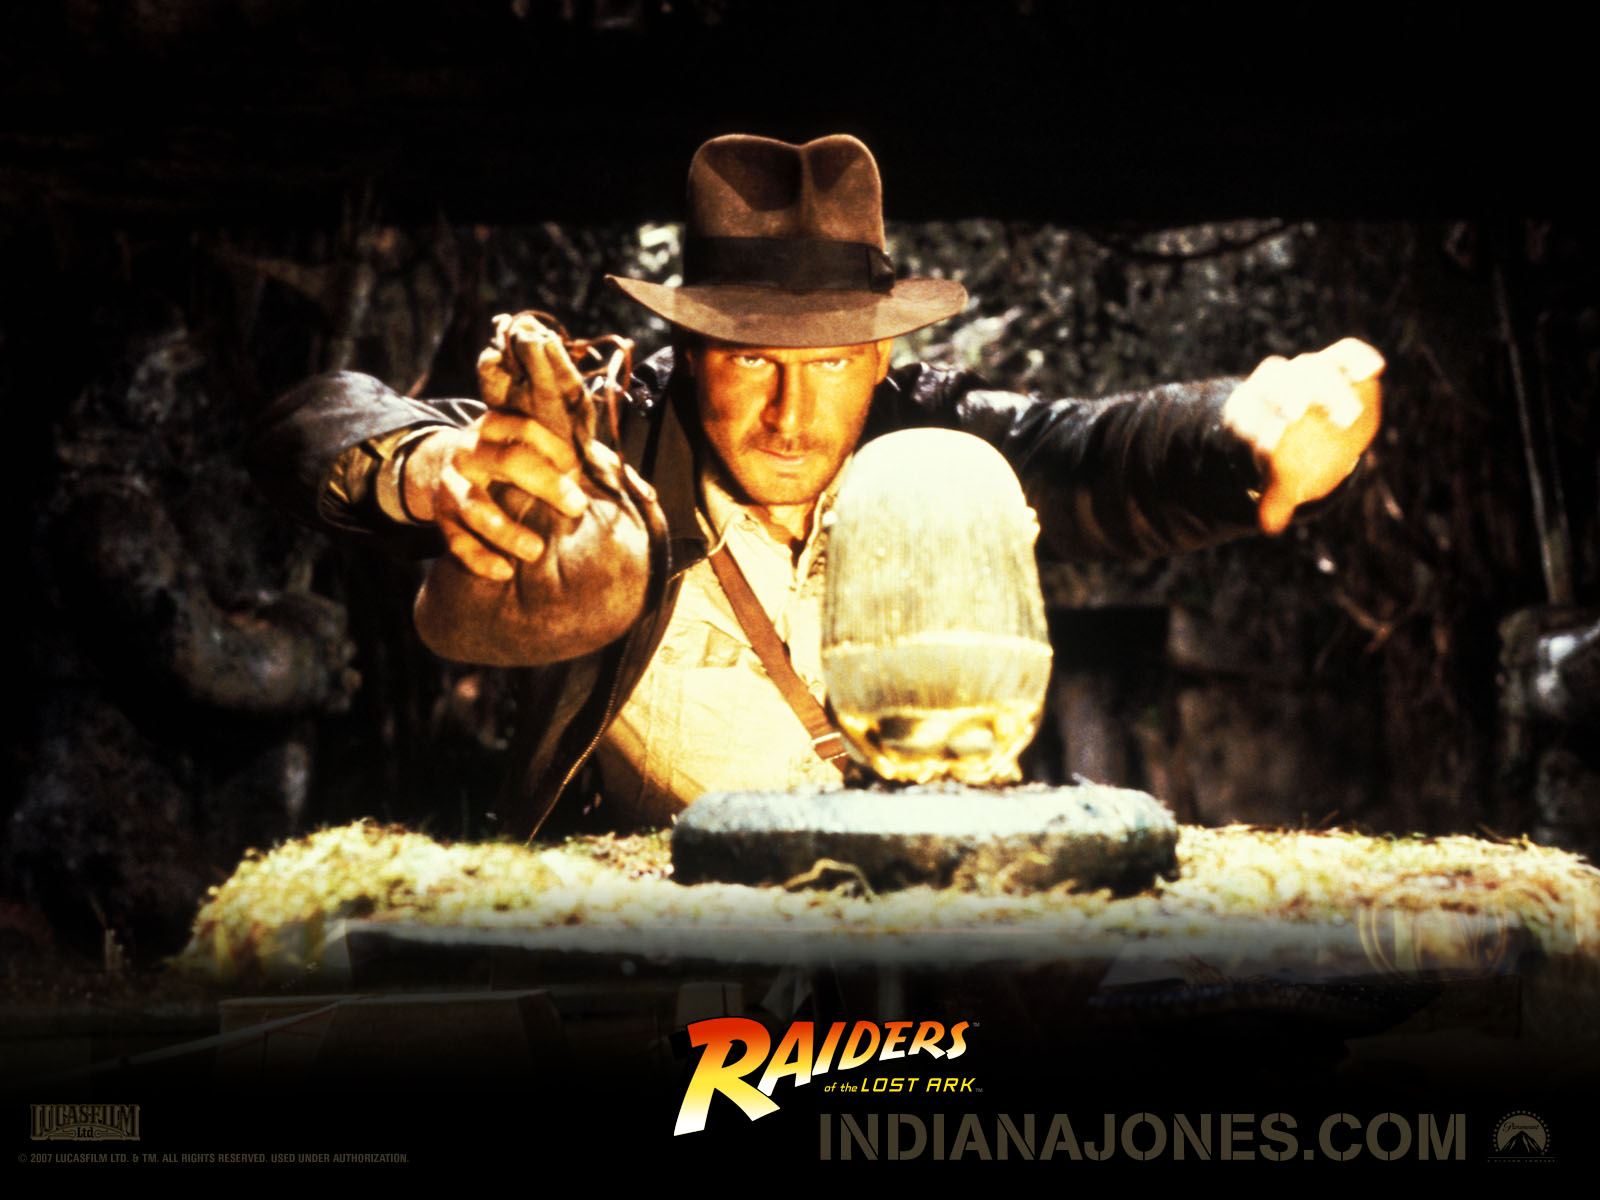 Indiana Jones Images Raiders Of The Lost Ark Hd Wallpaper And Background Photos